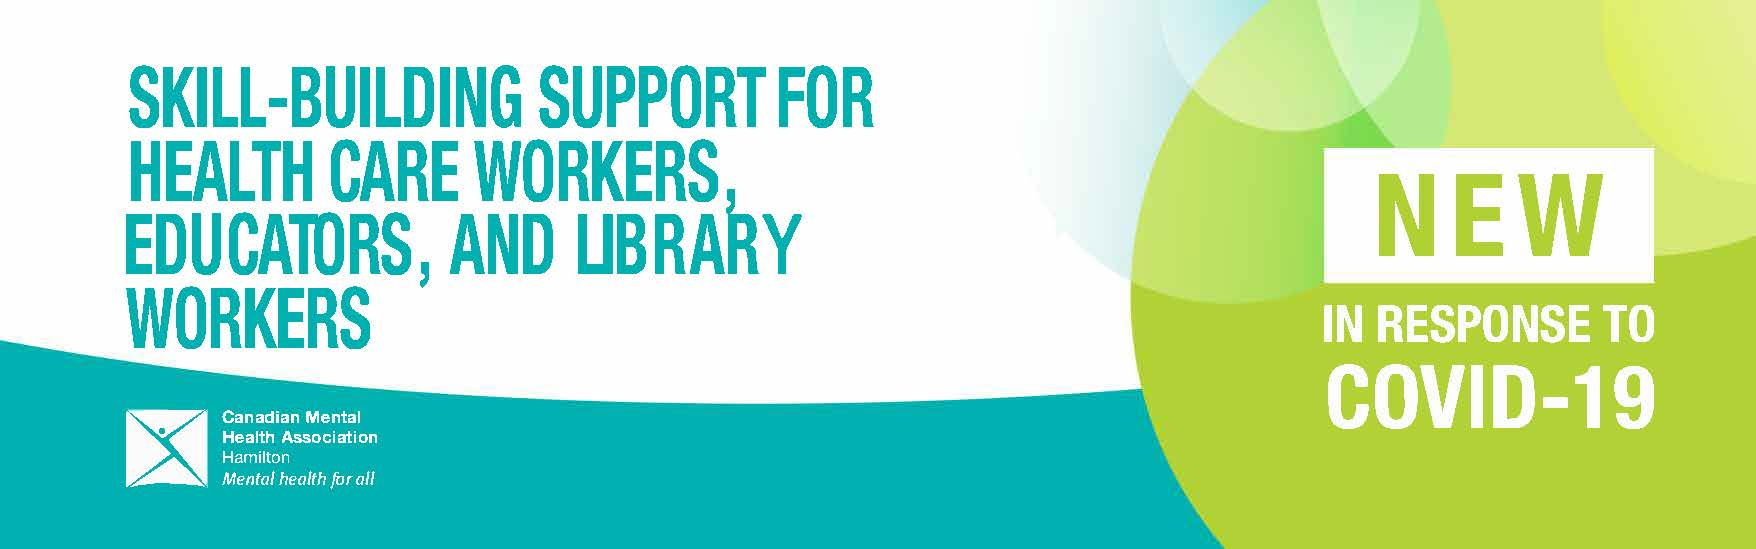 Skill-Building Support for Health Care Workers, Educators, and Library Workers